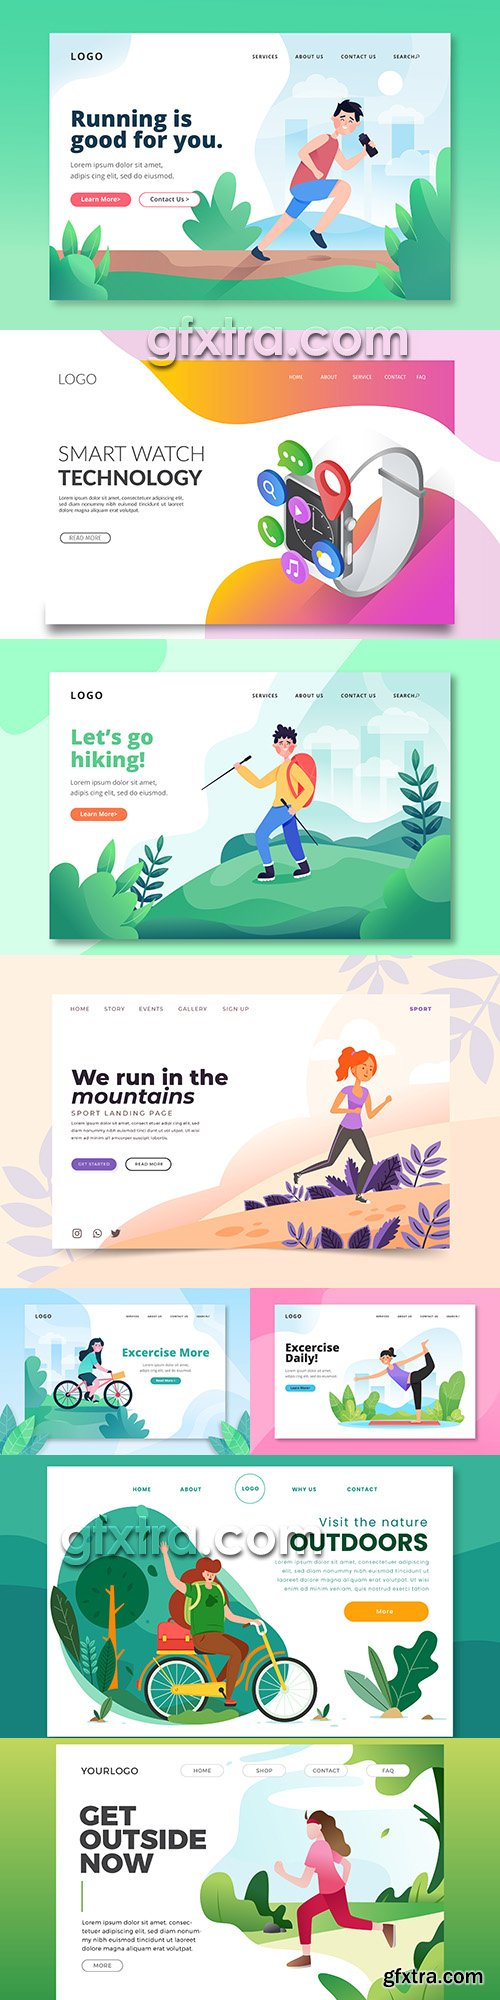 Illustrations website landing page business internet technology 3